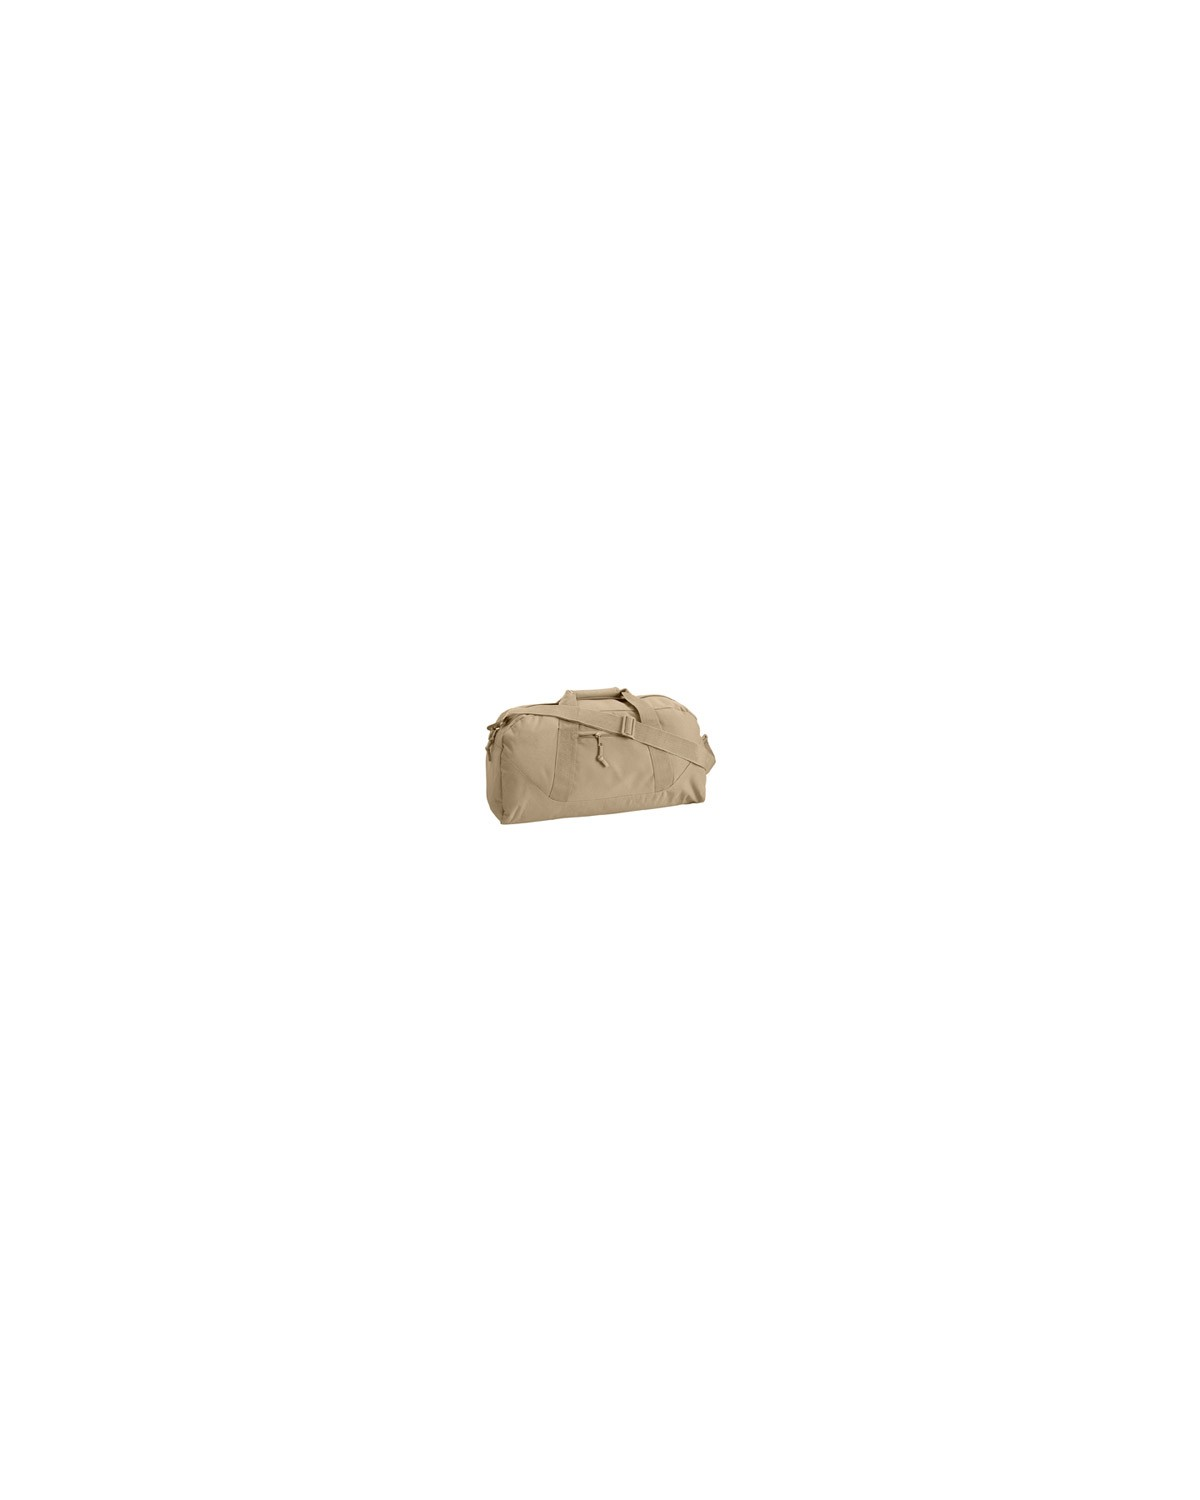 8806 Liberty Bags LIGHT TAN